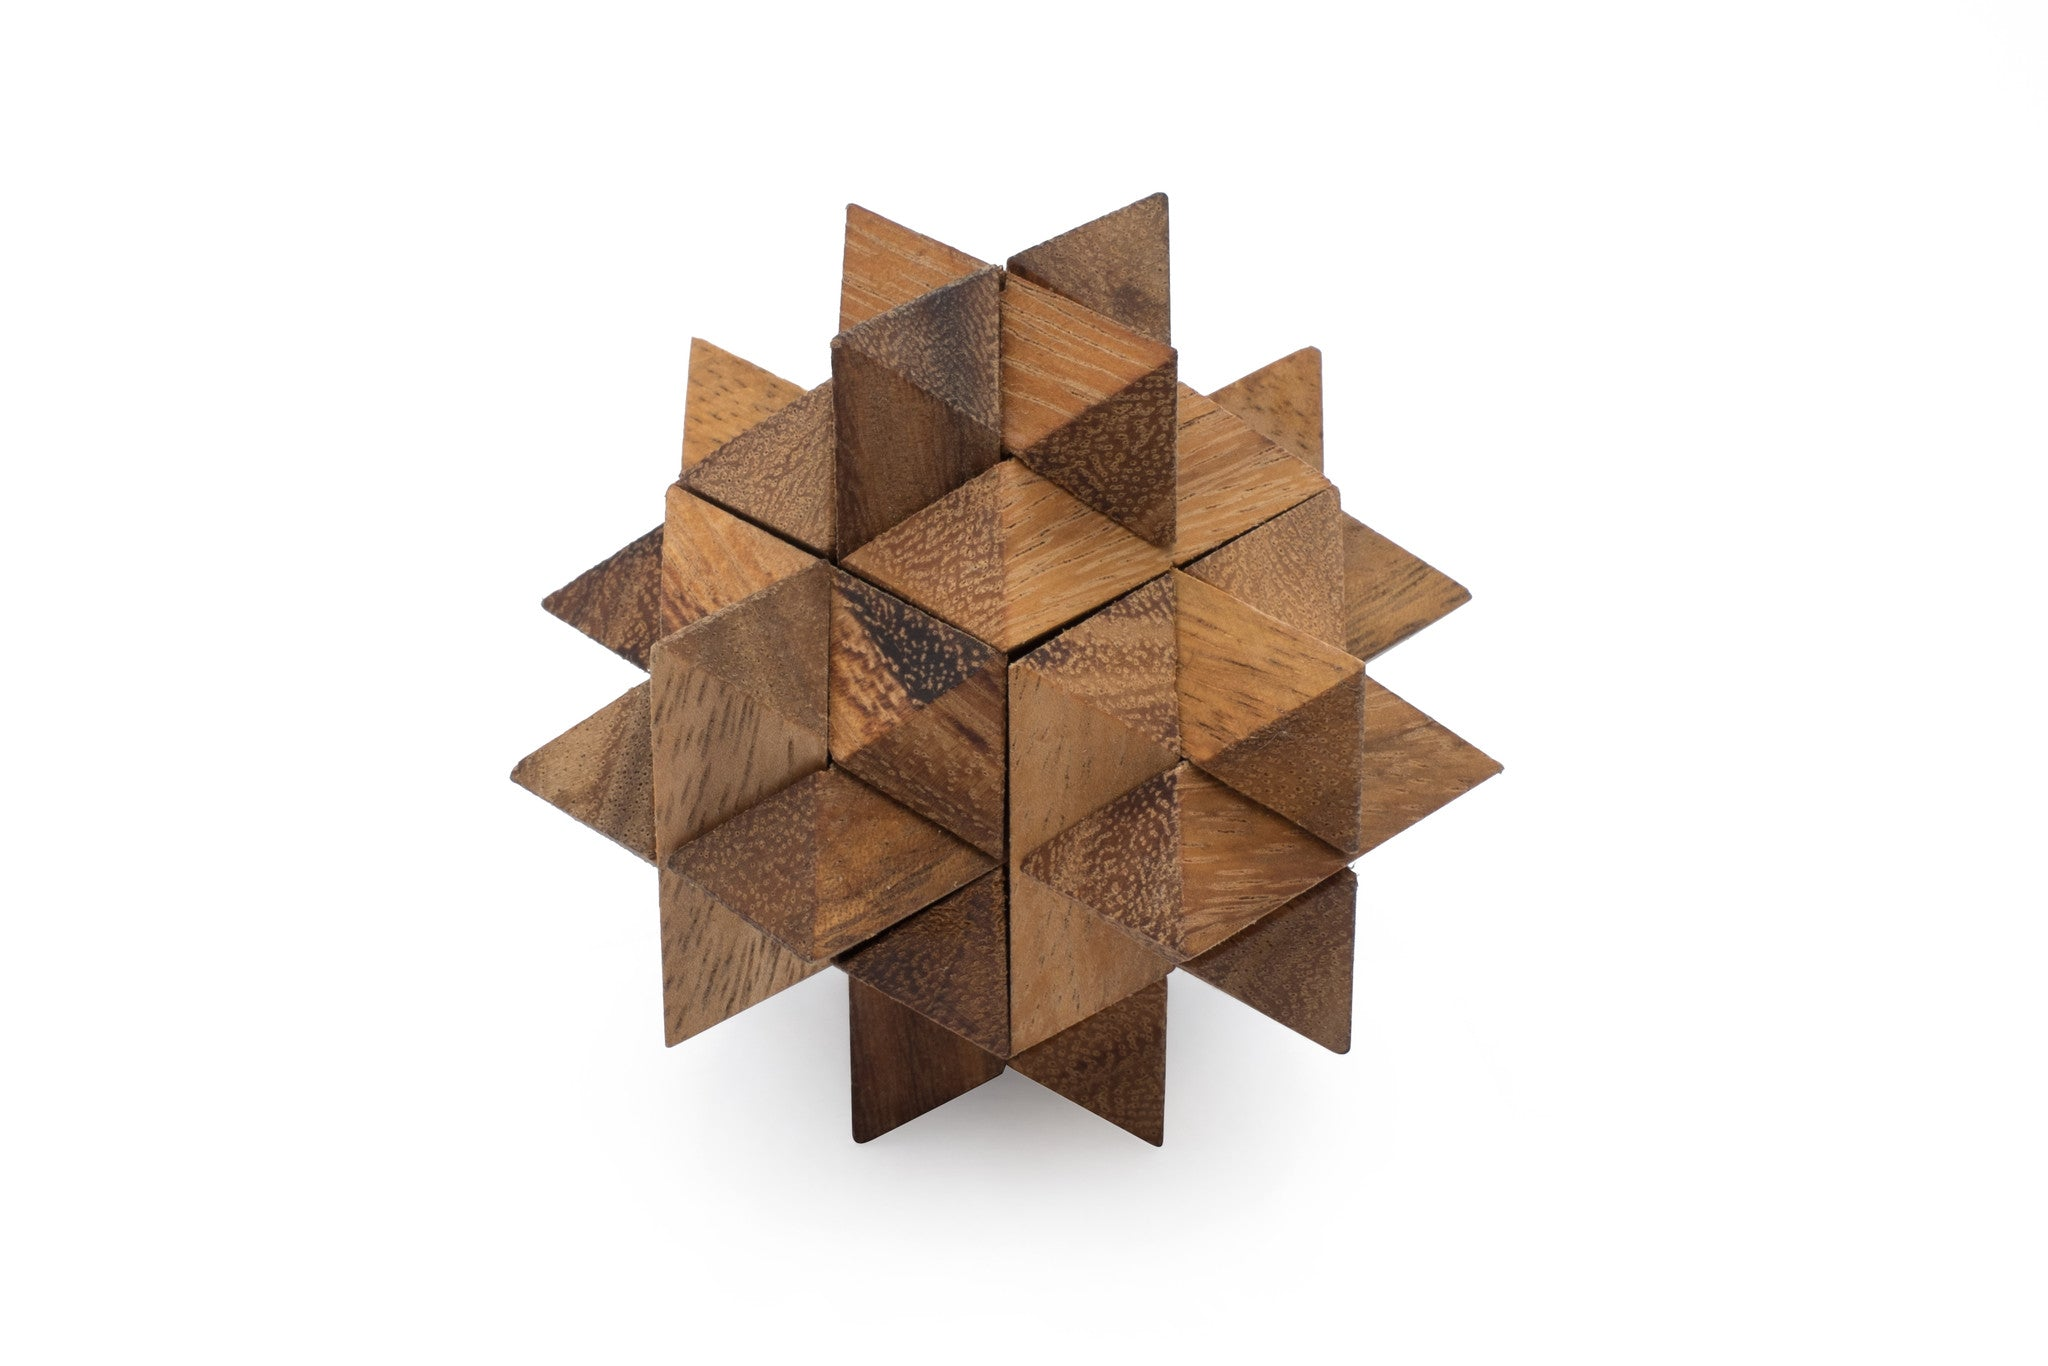 Asterisk 3D Wooden Puzzle With Free Worldwide-6687